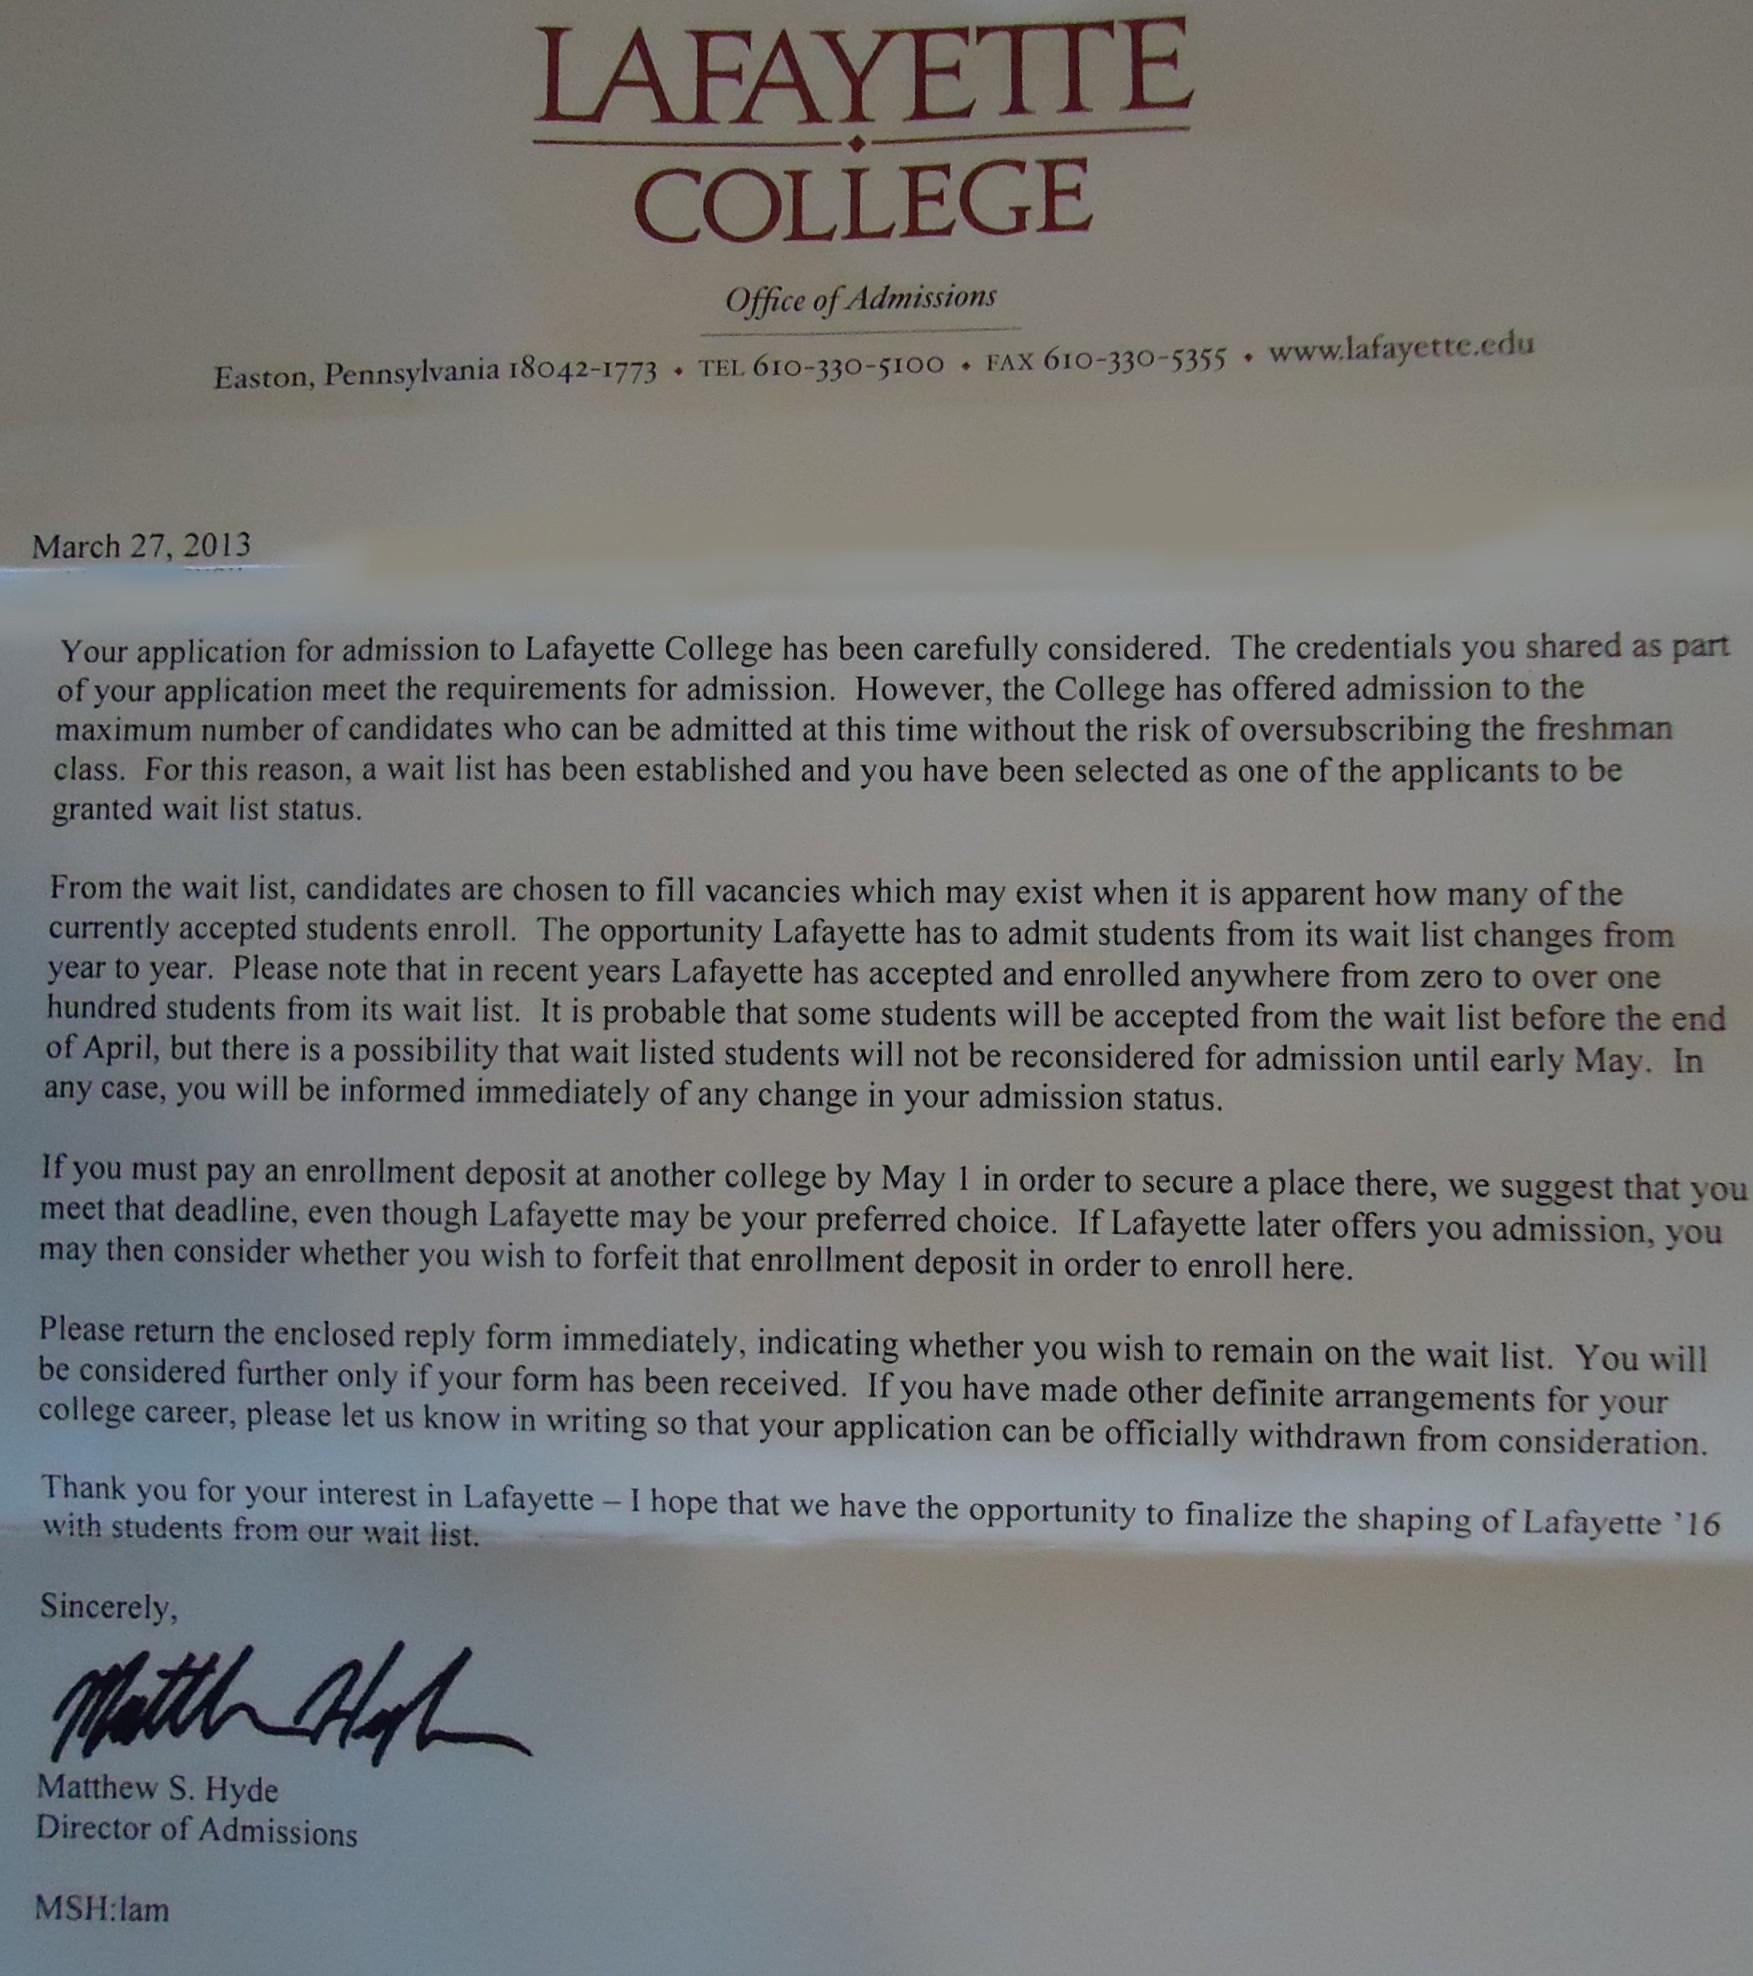 FileLafayette College admissions department waitlist letterjpg